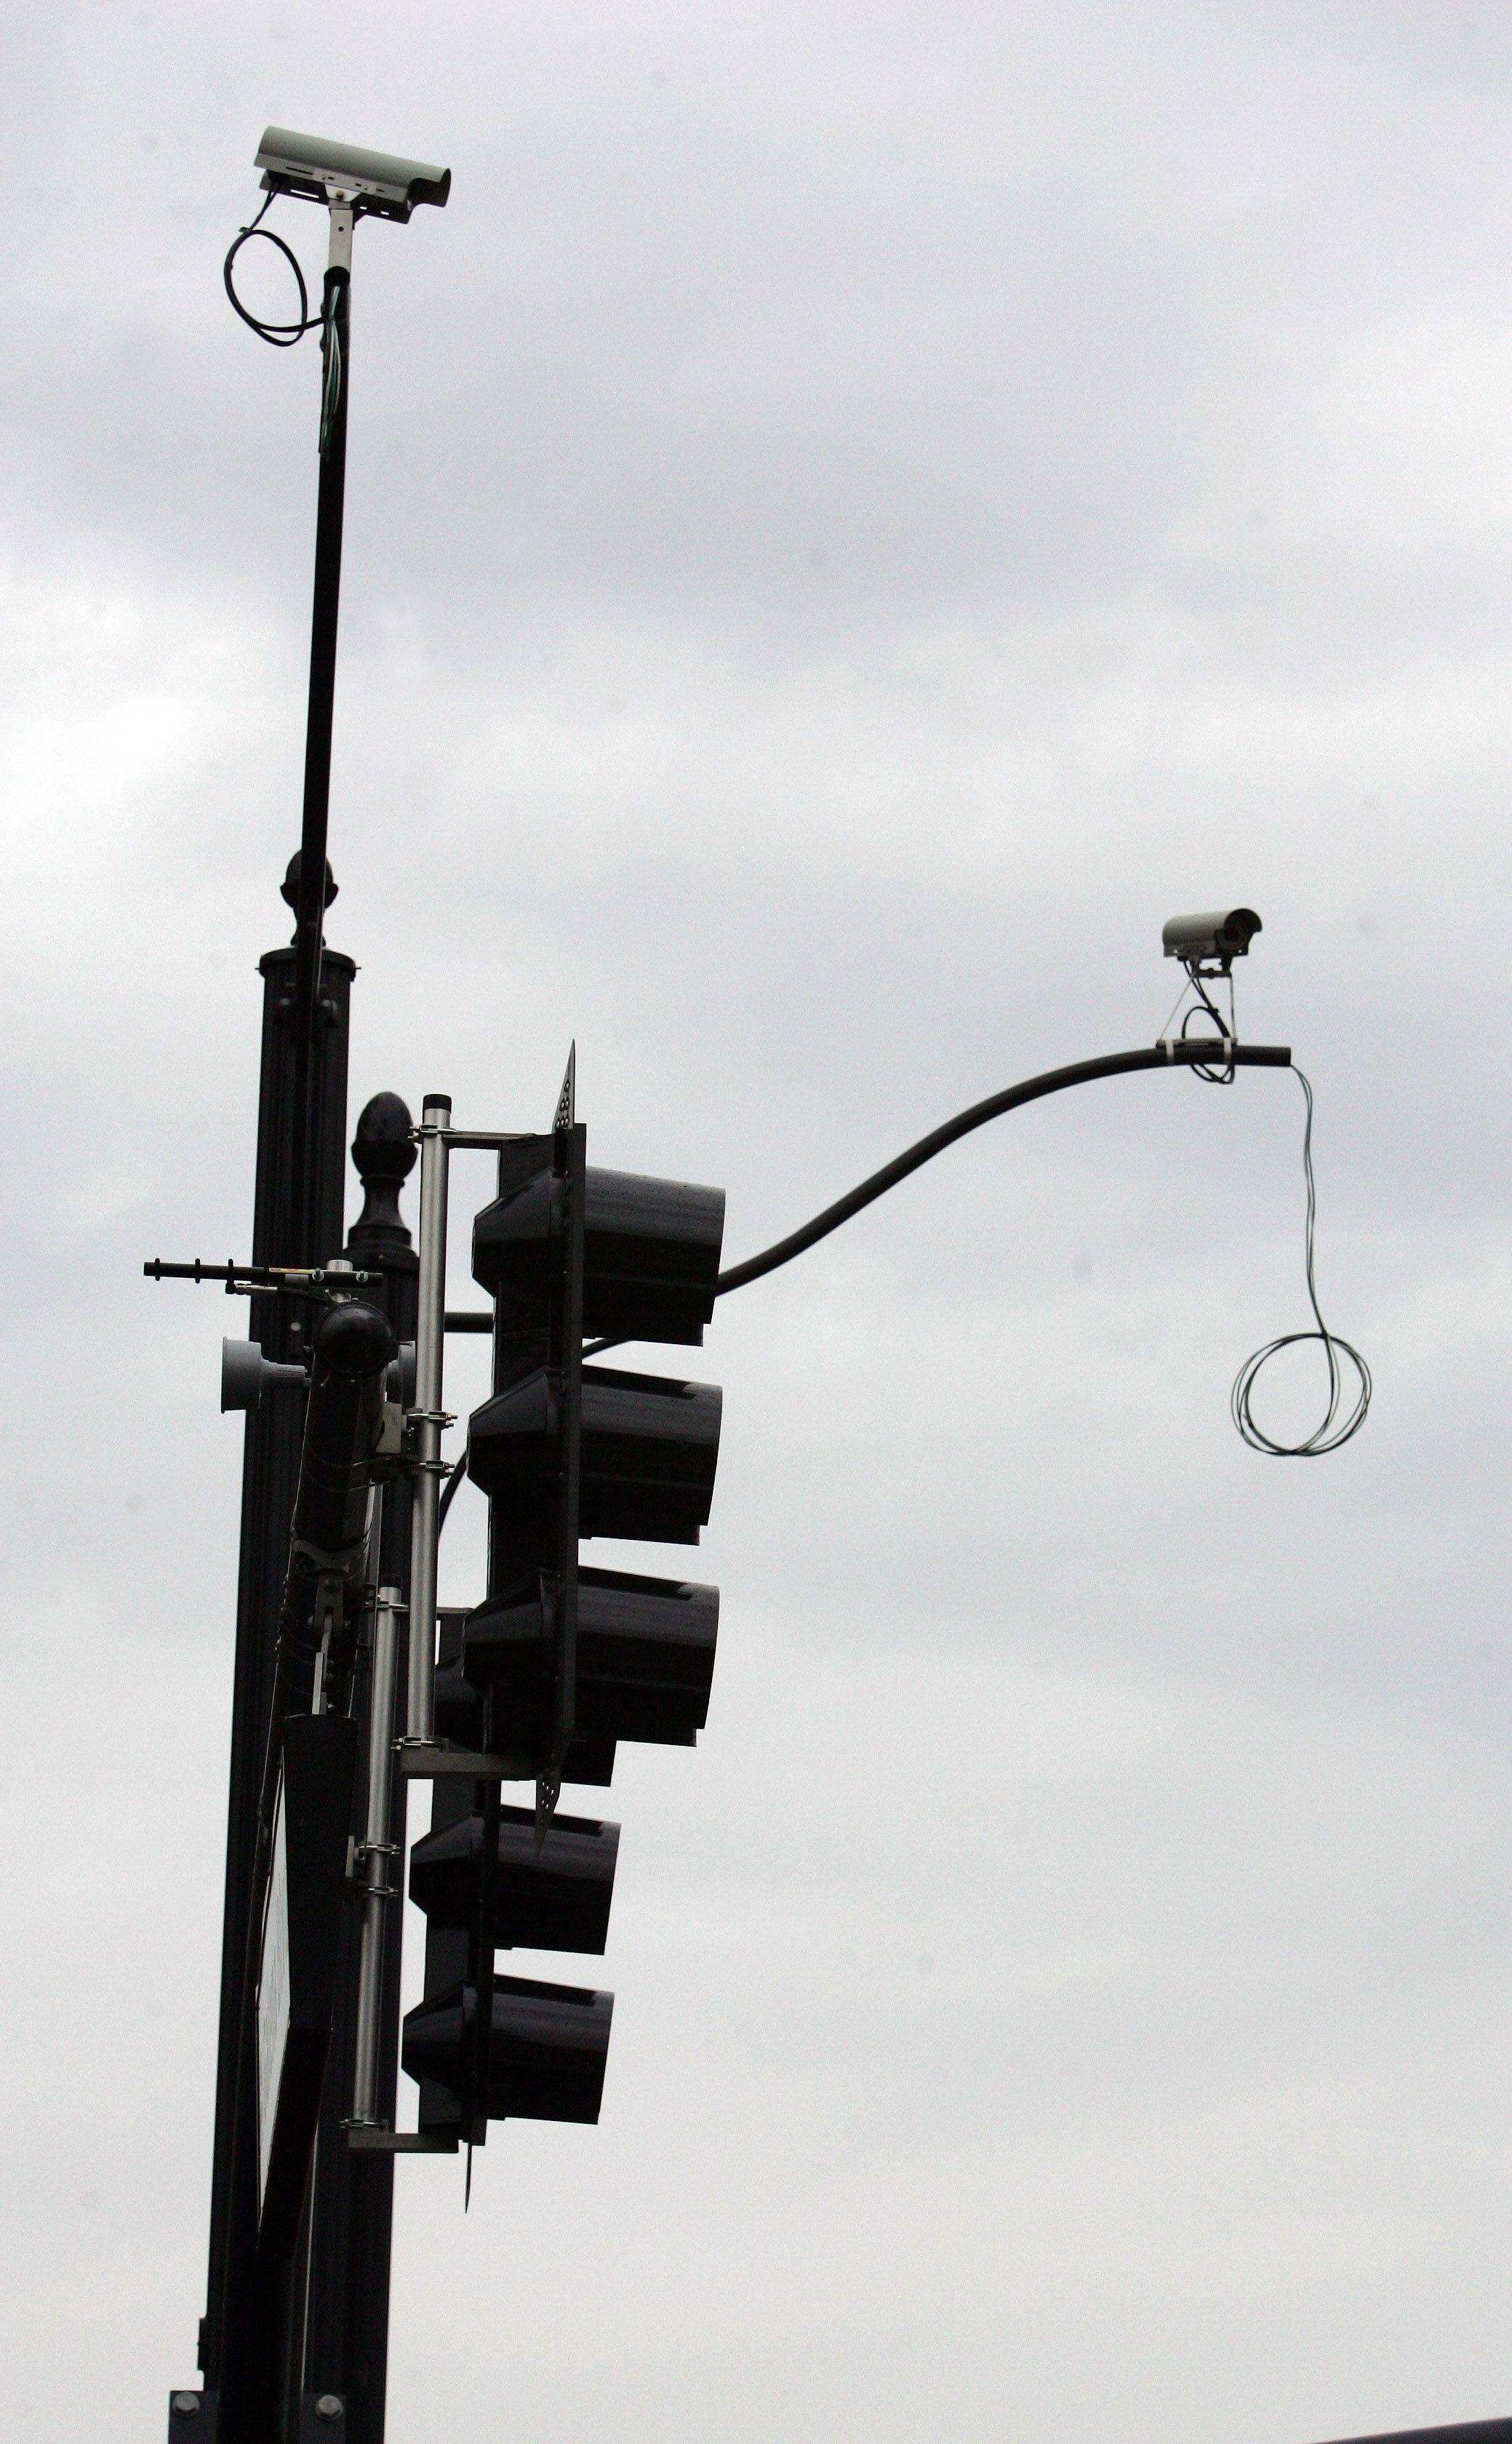 New traffic signals like this one being installed in Aurora include traffic monitoring cameras and control boxes that allow city staff to change the signal remotely from a traffic control center in city hall.